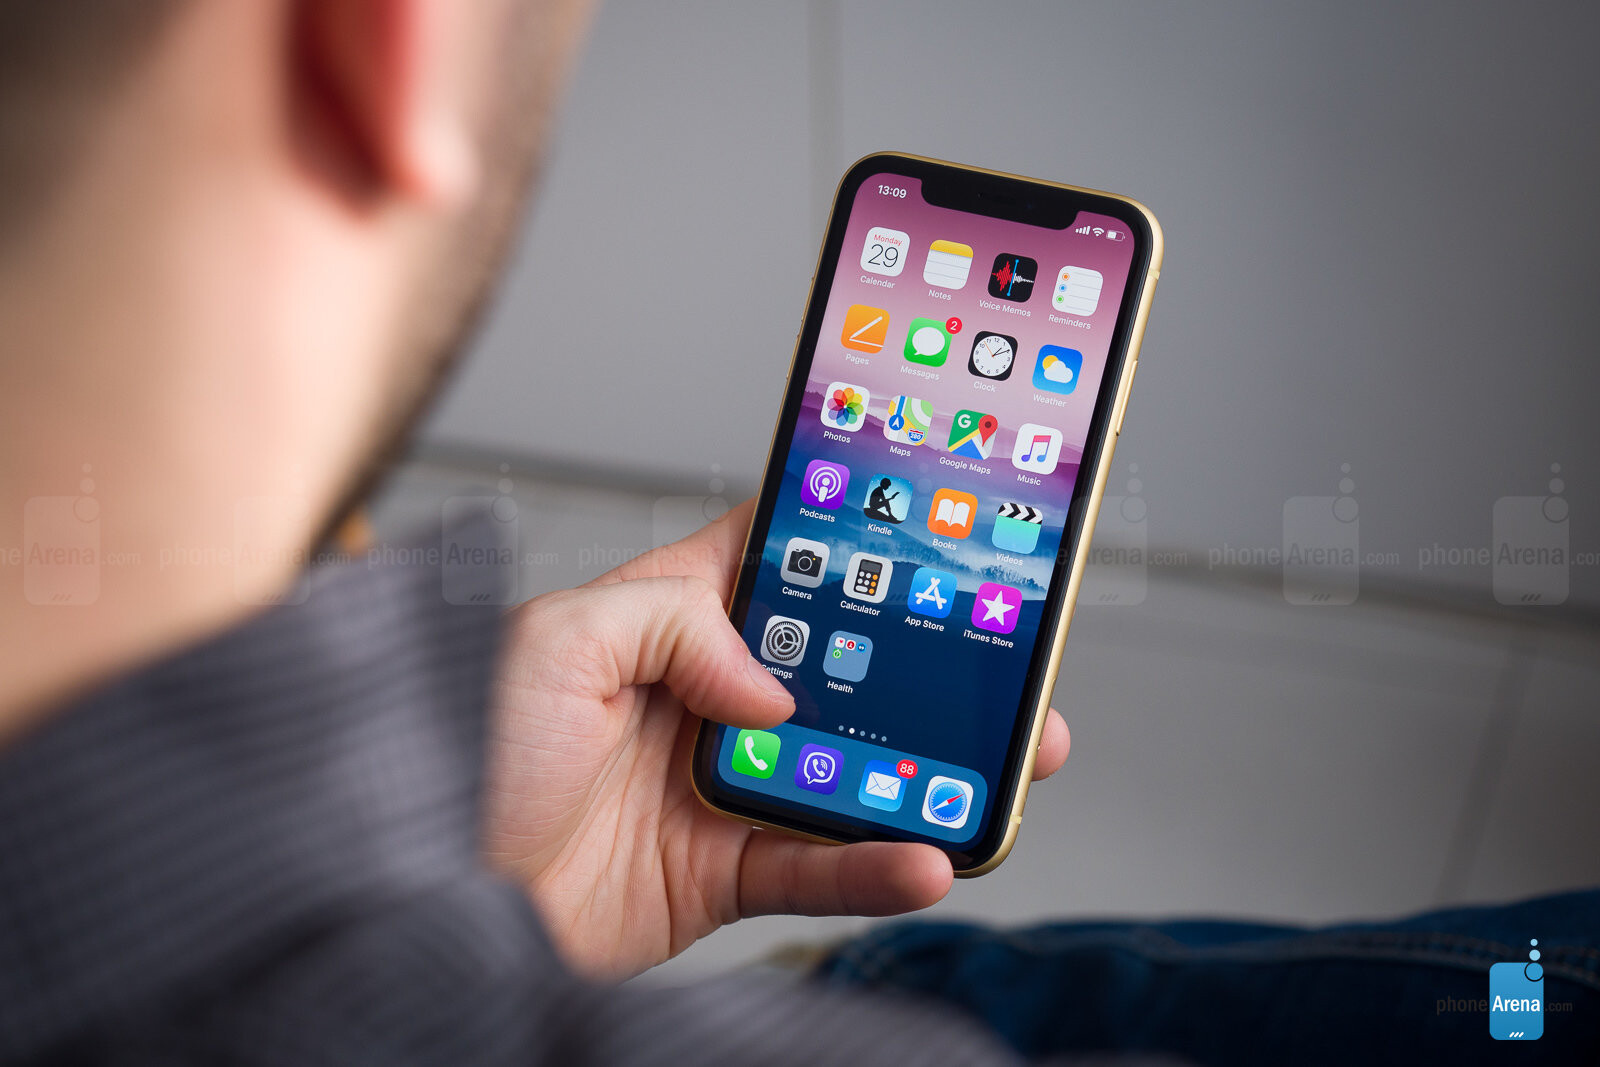 Apple iPhone XR Q&A: Your questions answered! - PhoneArena